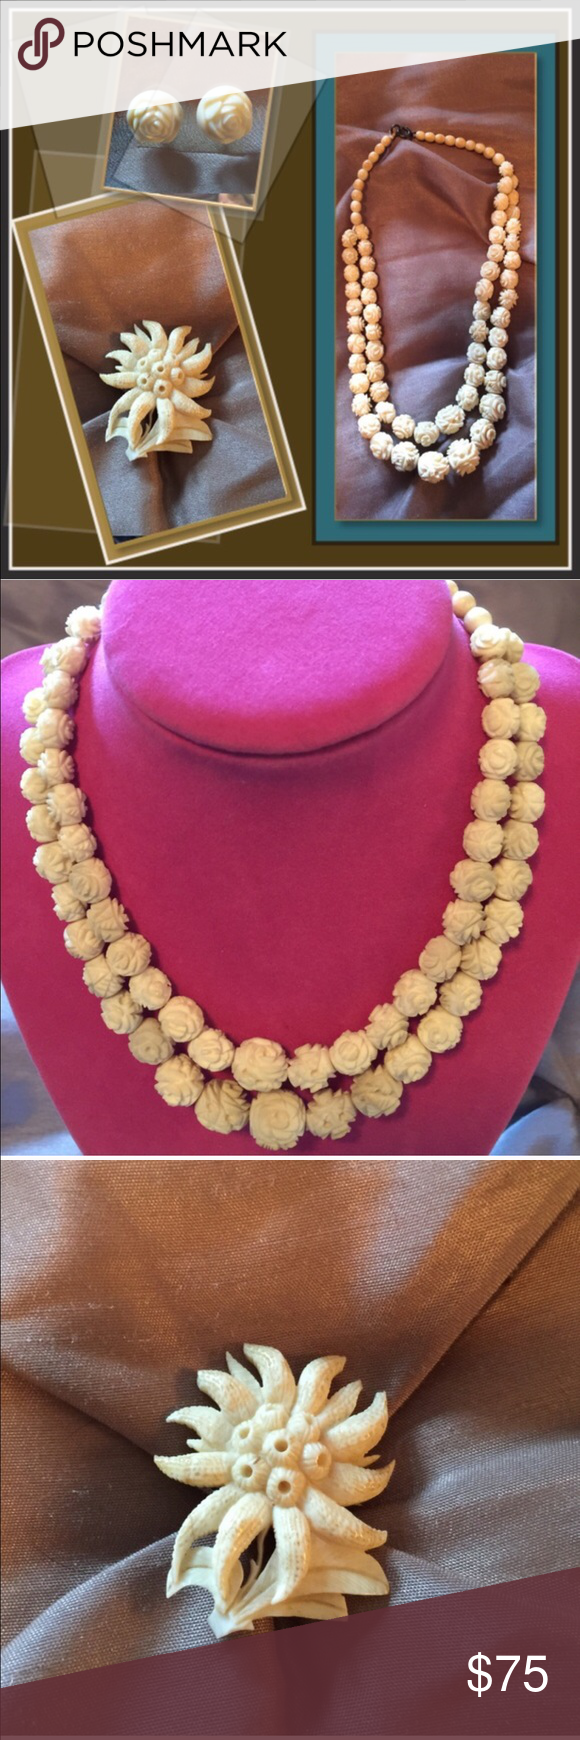 30++ Where can i sell ivory jewelry ideas in 2021